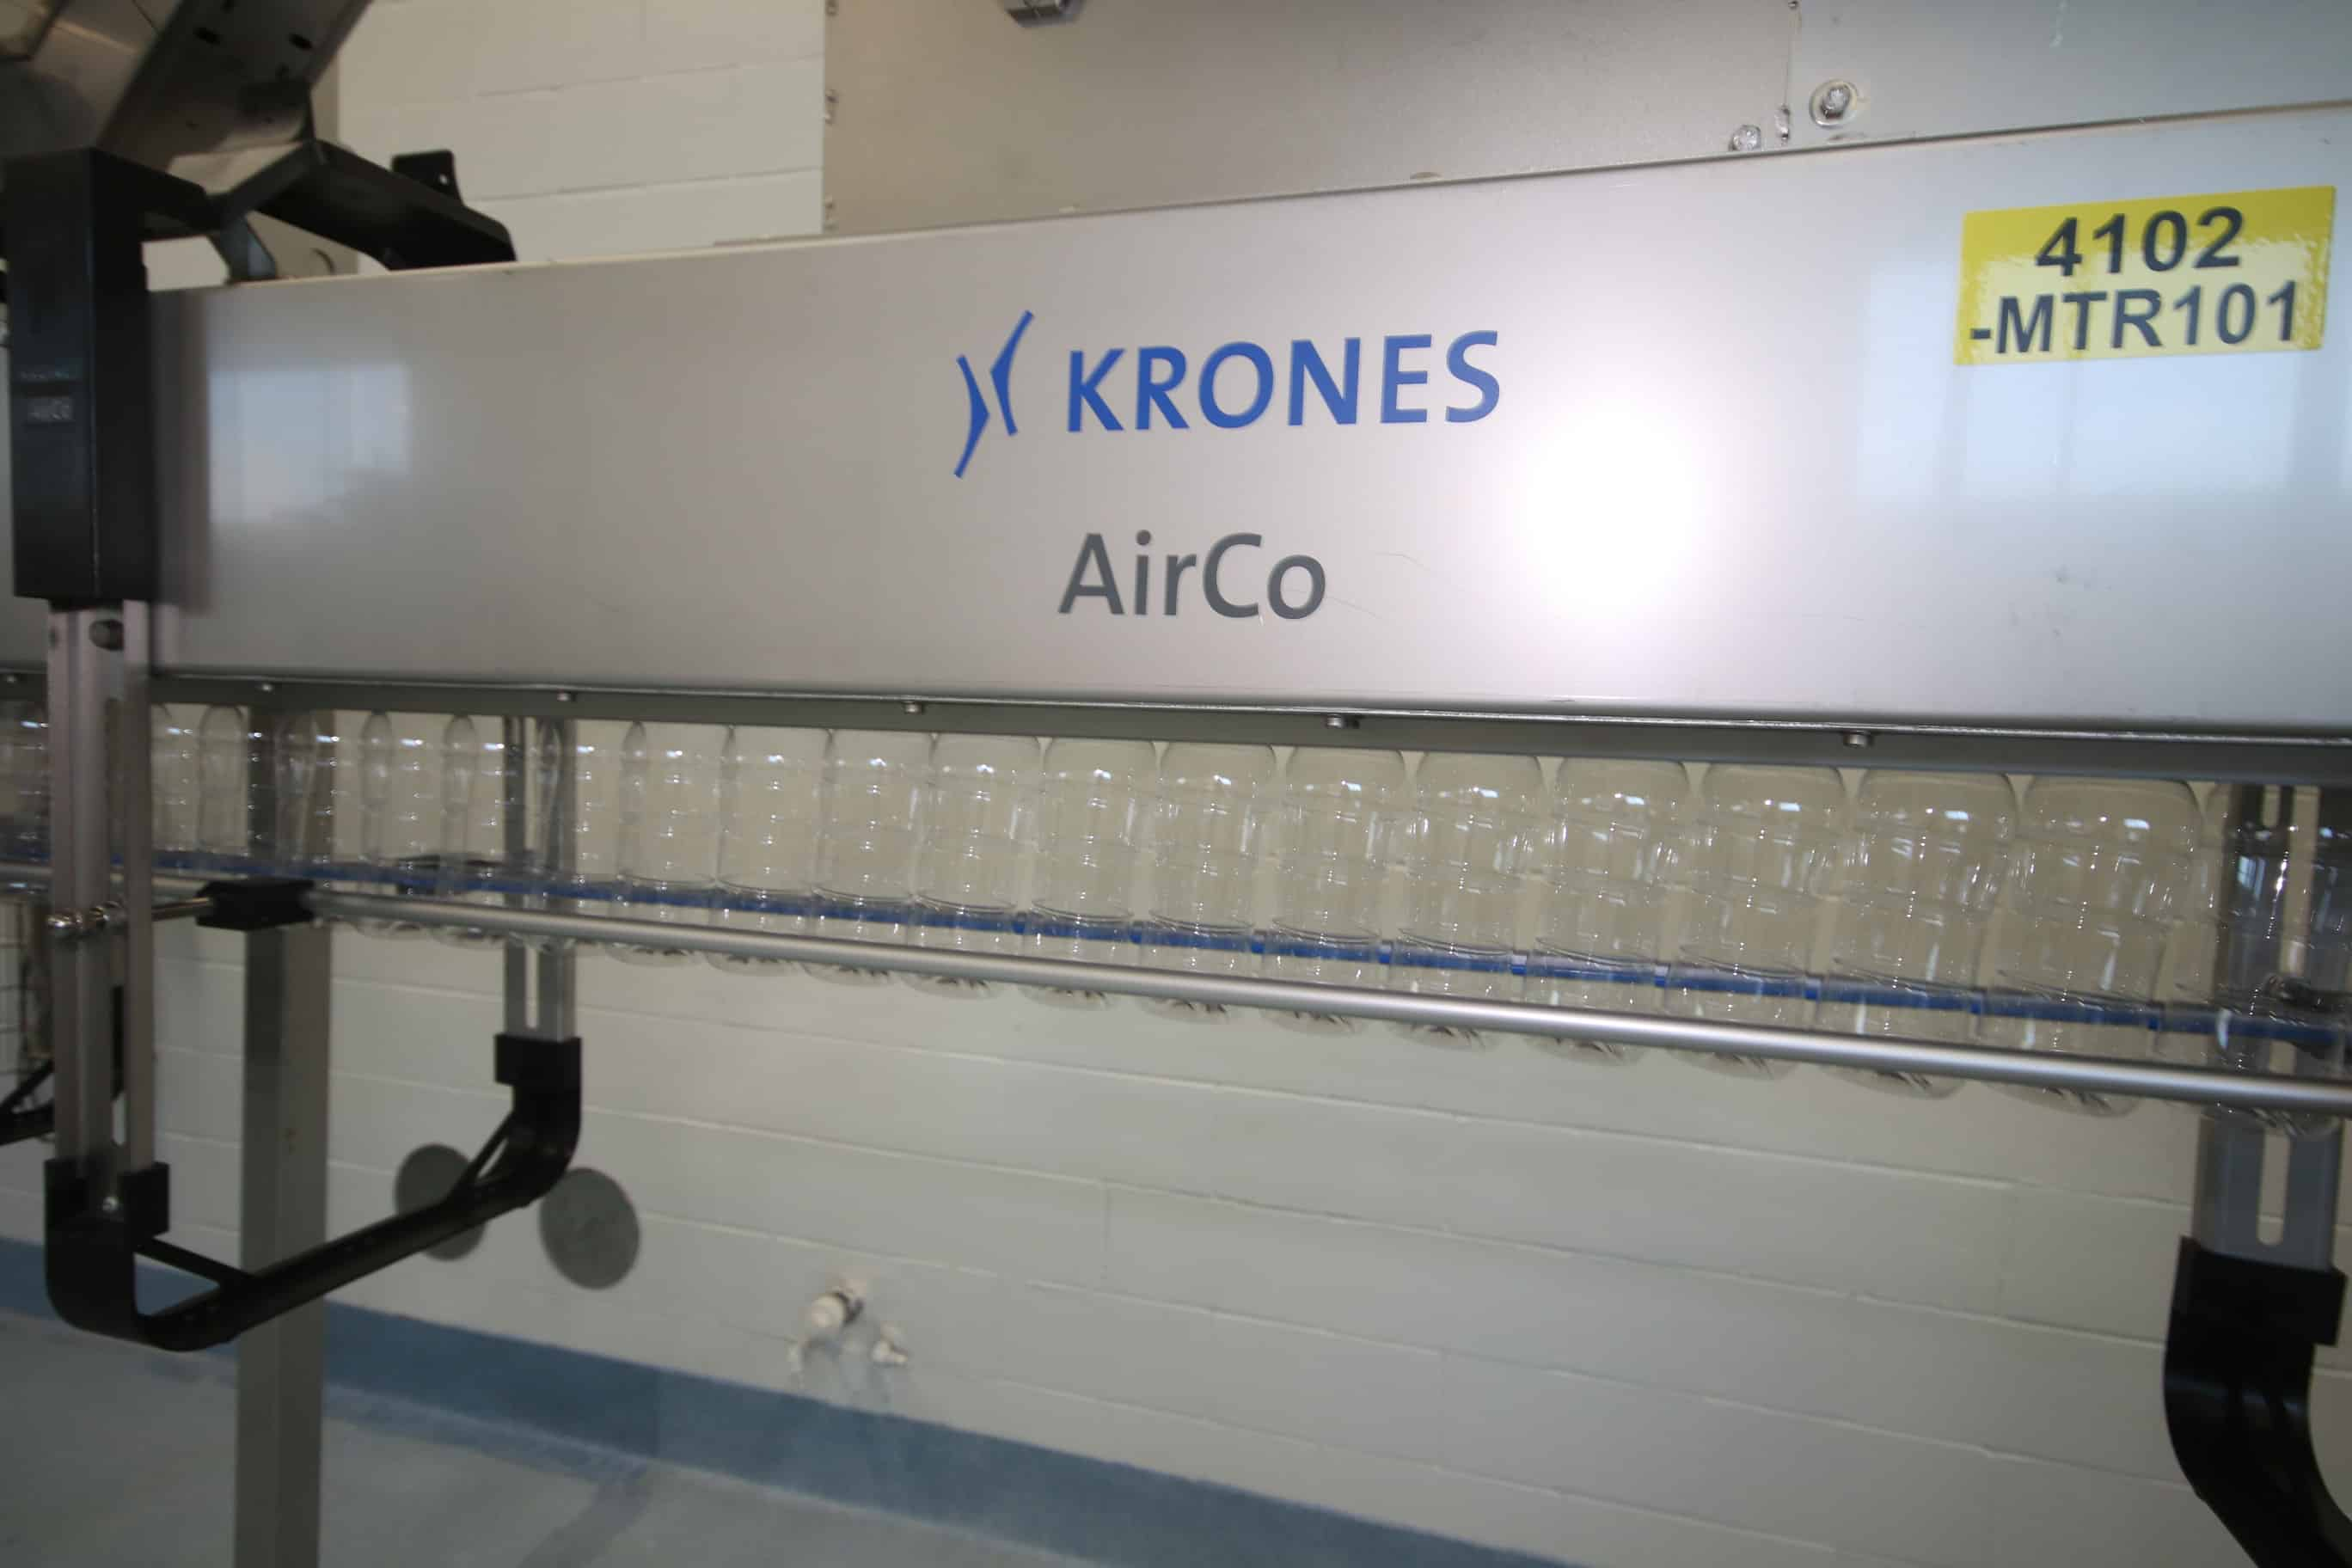 Krones AirCo Air Conveyor System, Type:  AIRCO S, S/N K970-B83, with (4) Krones Blowers, Aprox. 84' Long with S/S Legs